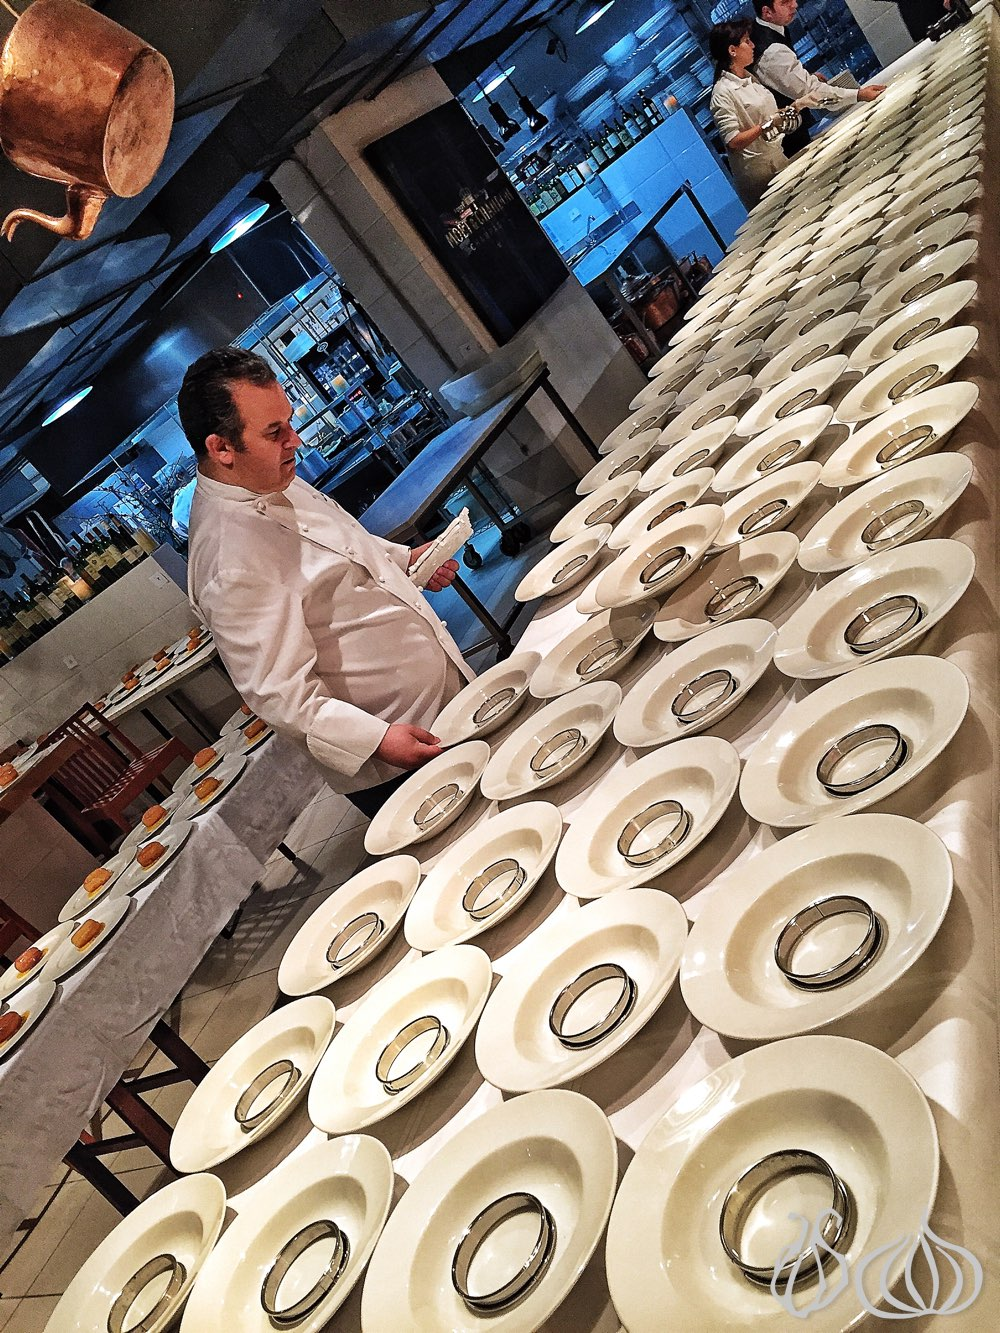 Hussein_Hadid_Gastronomy_Dinner_Kitchen_Beirut82